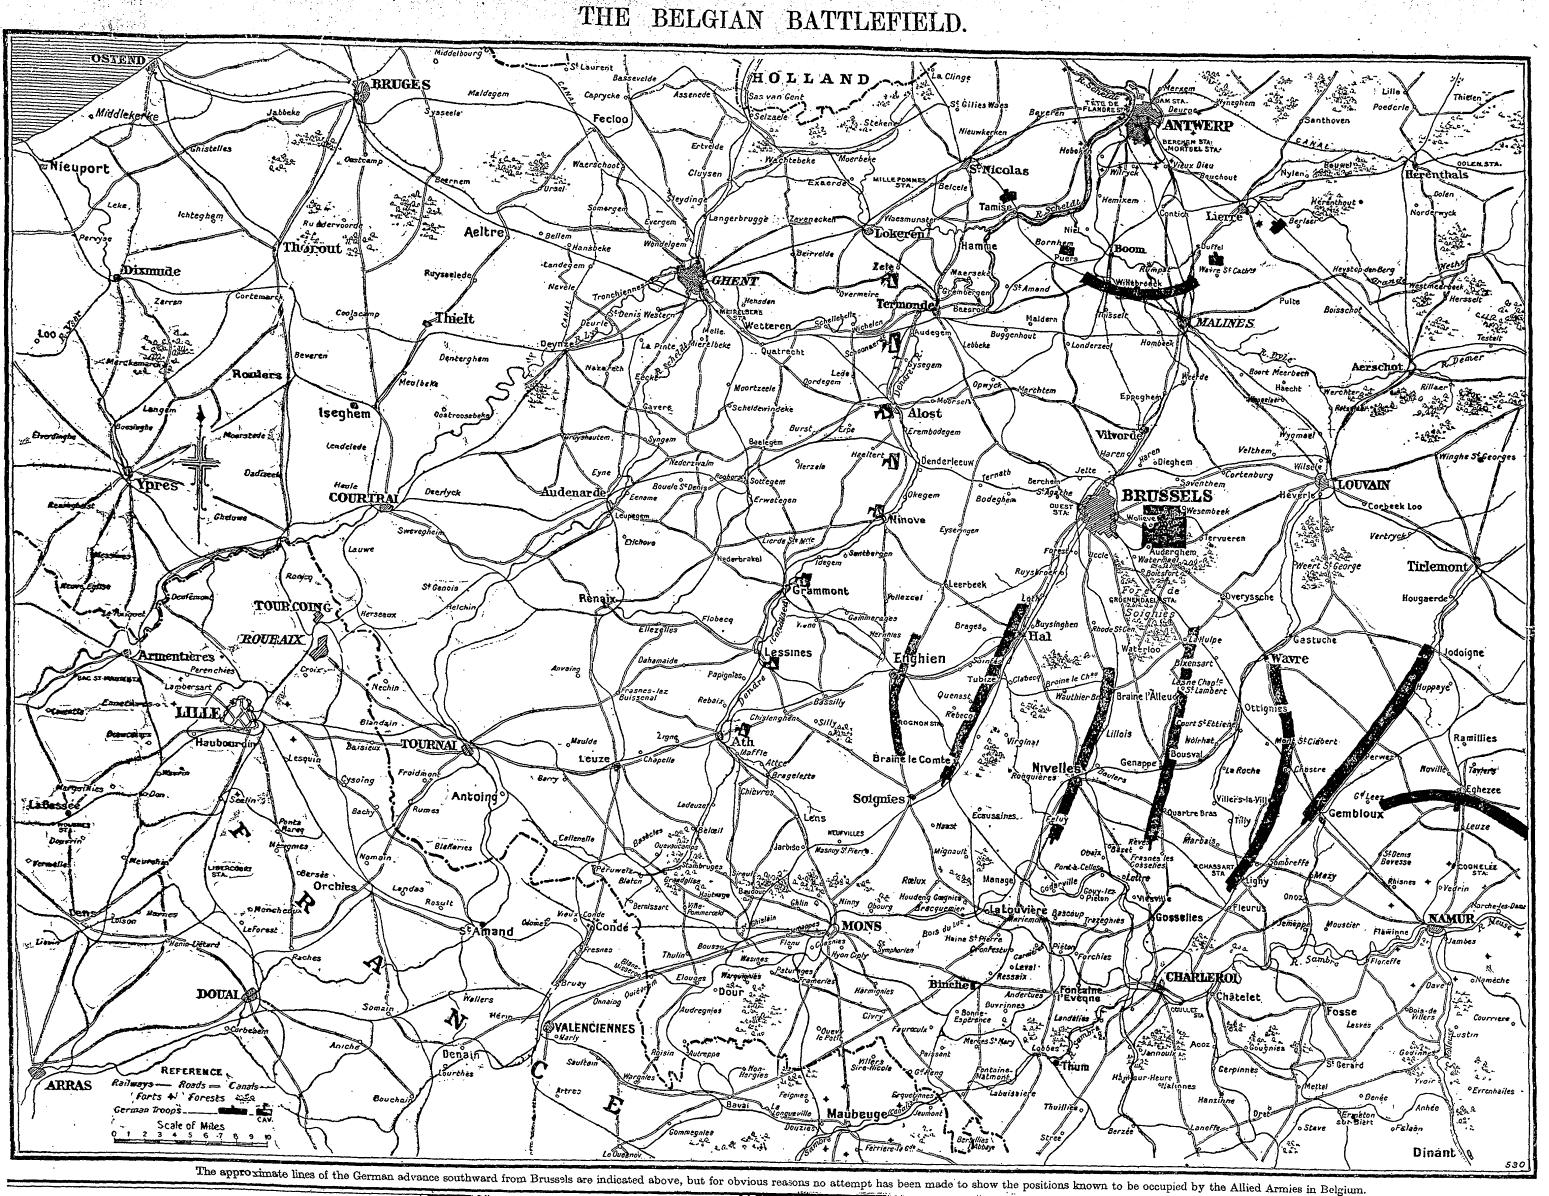 Map_24August_TheBelgianBattlefield